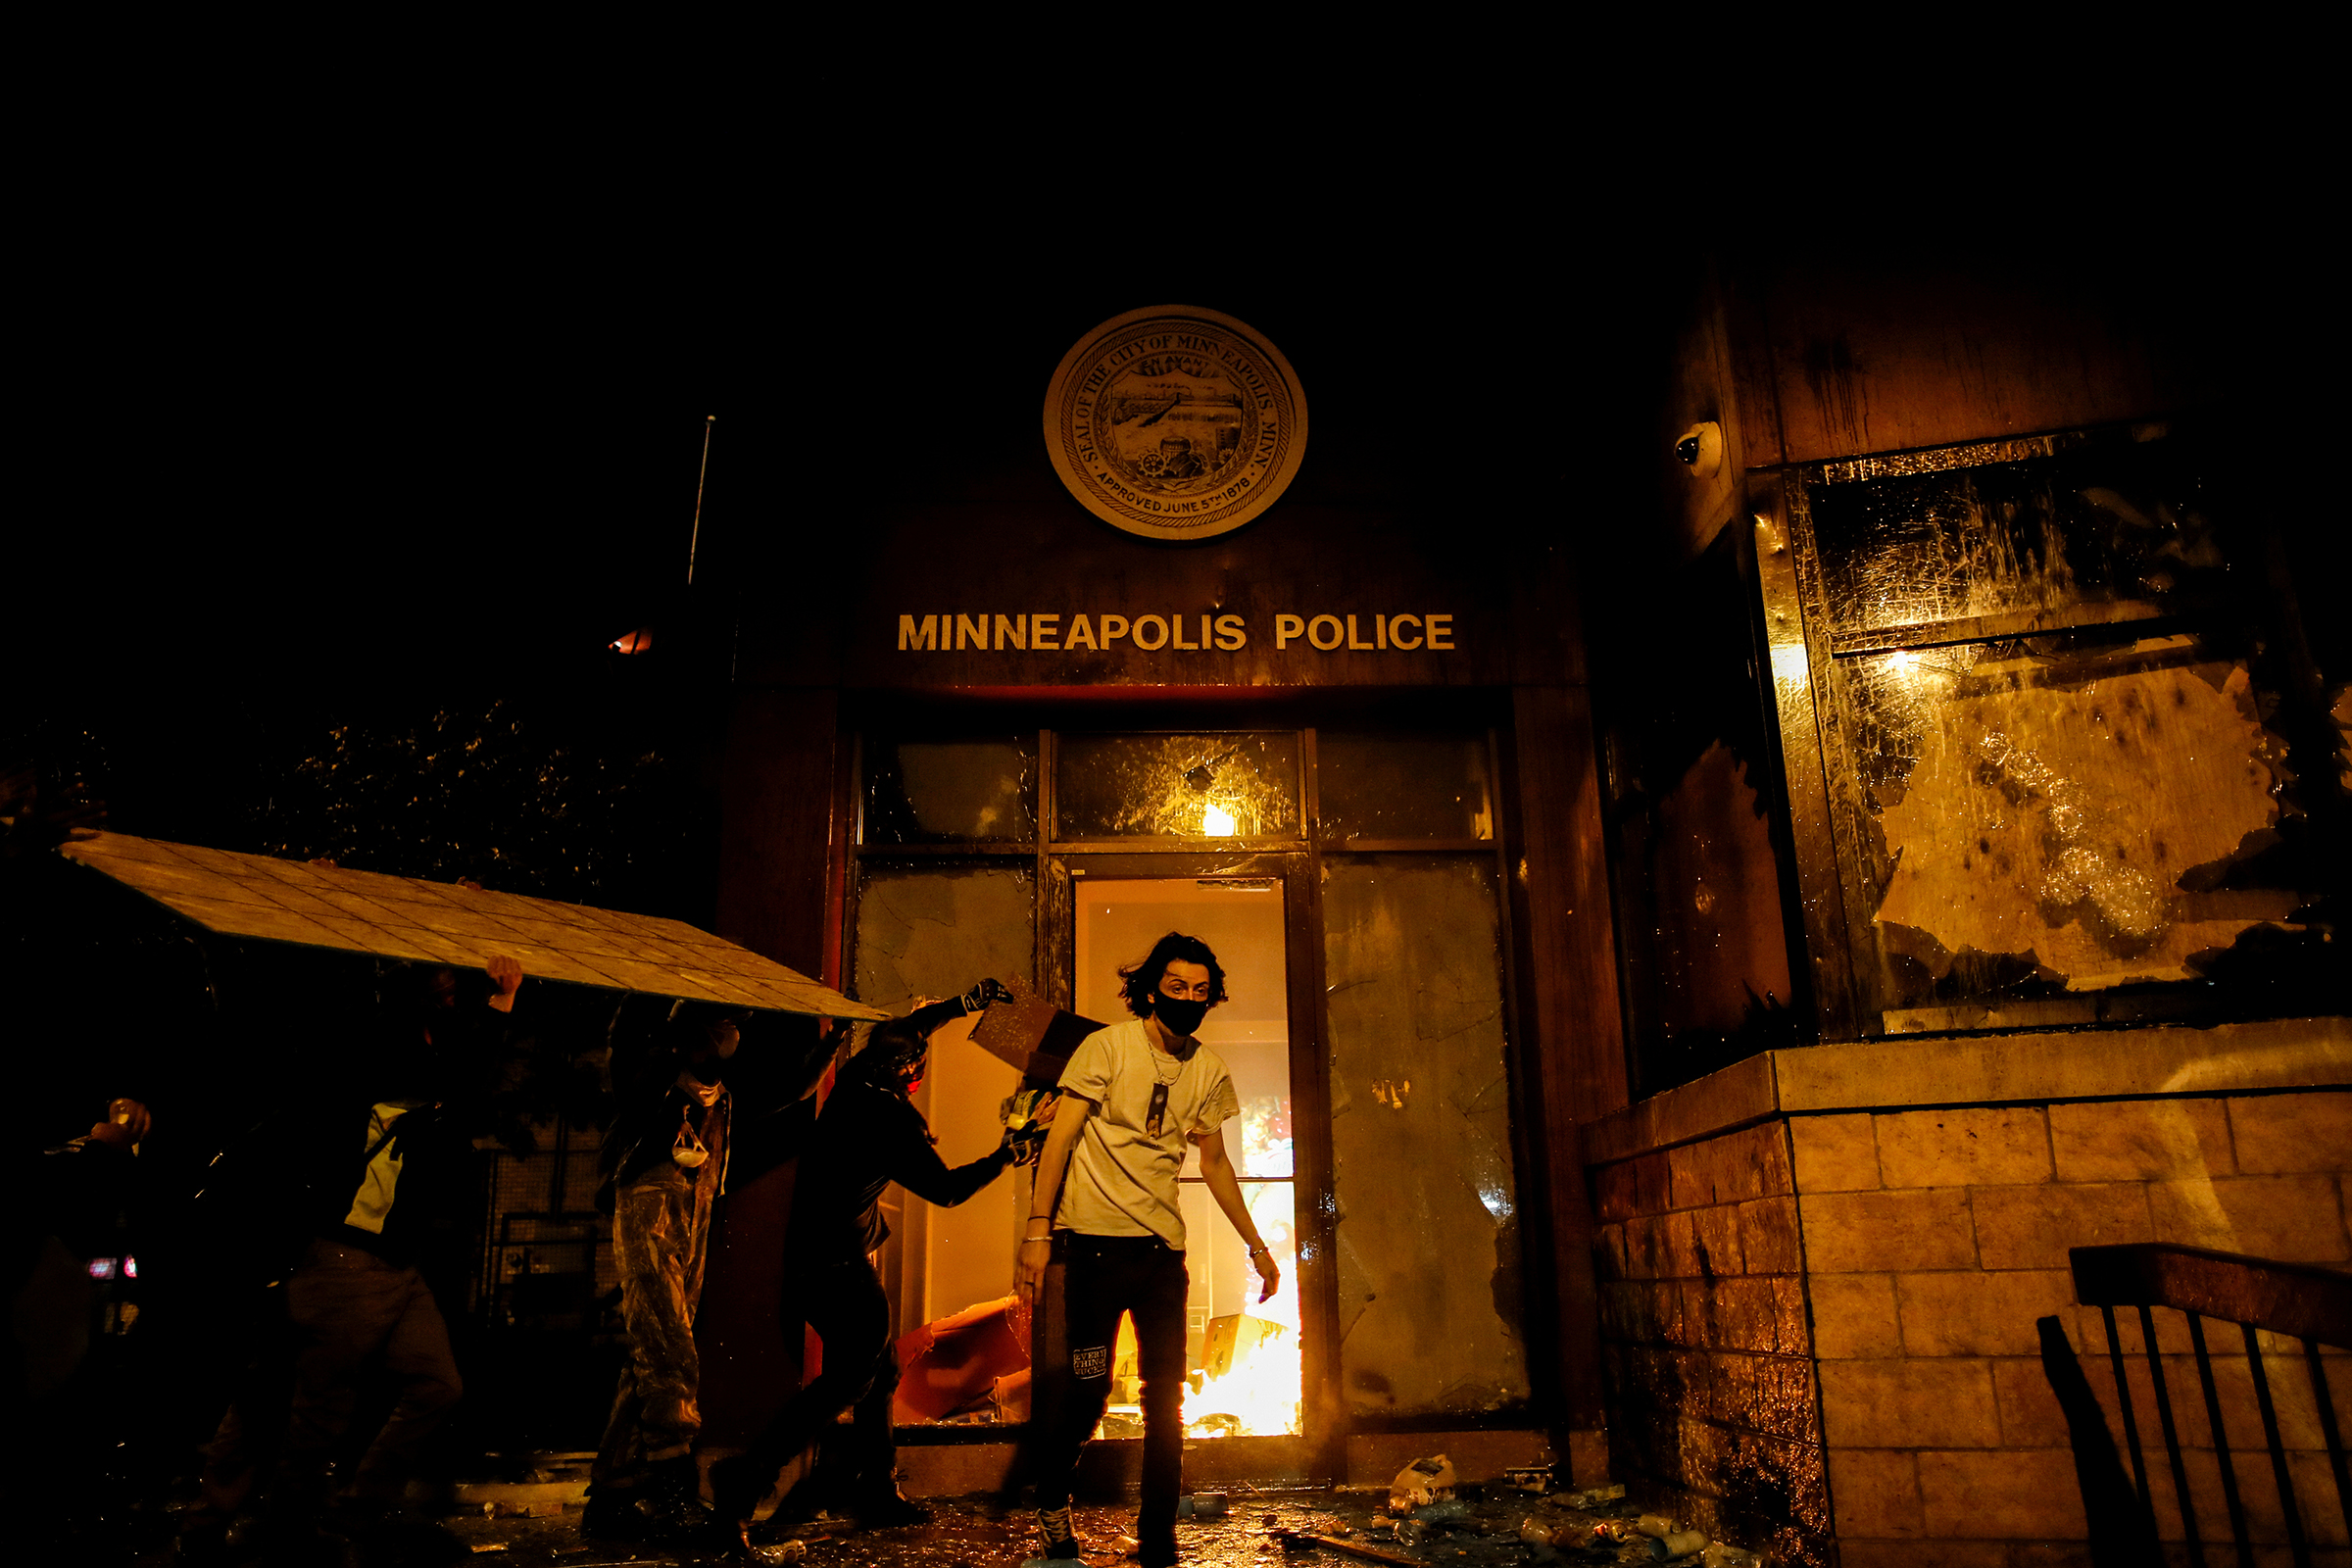 Protesters set fire to the entrance of the 3rd precinct on May 28.